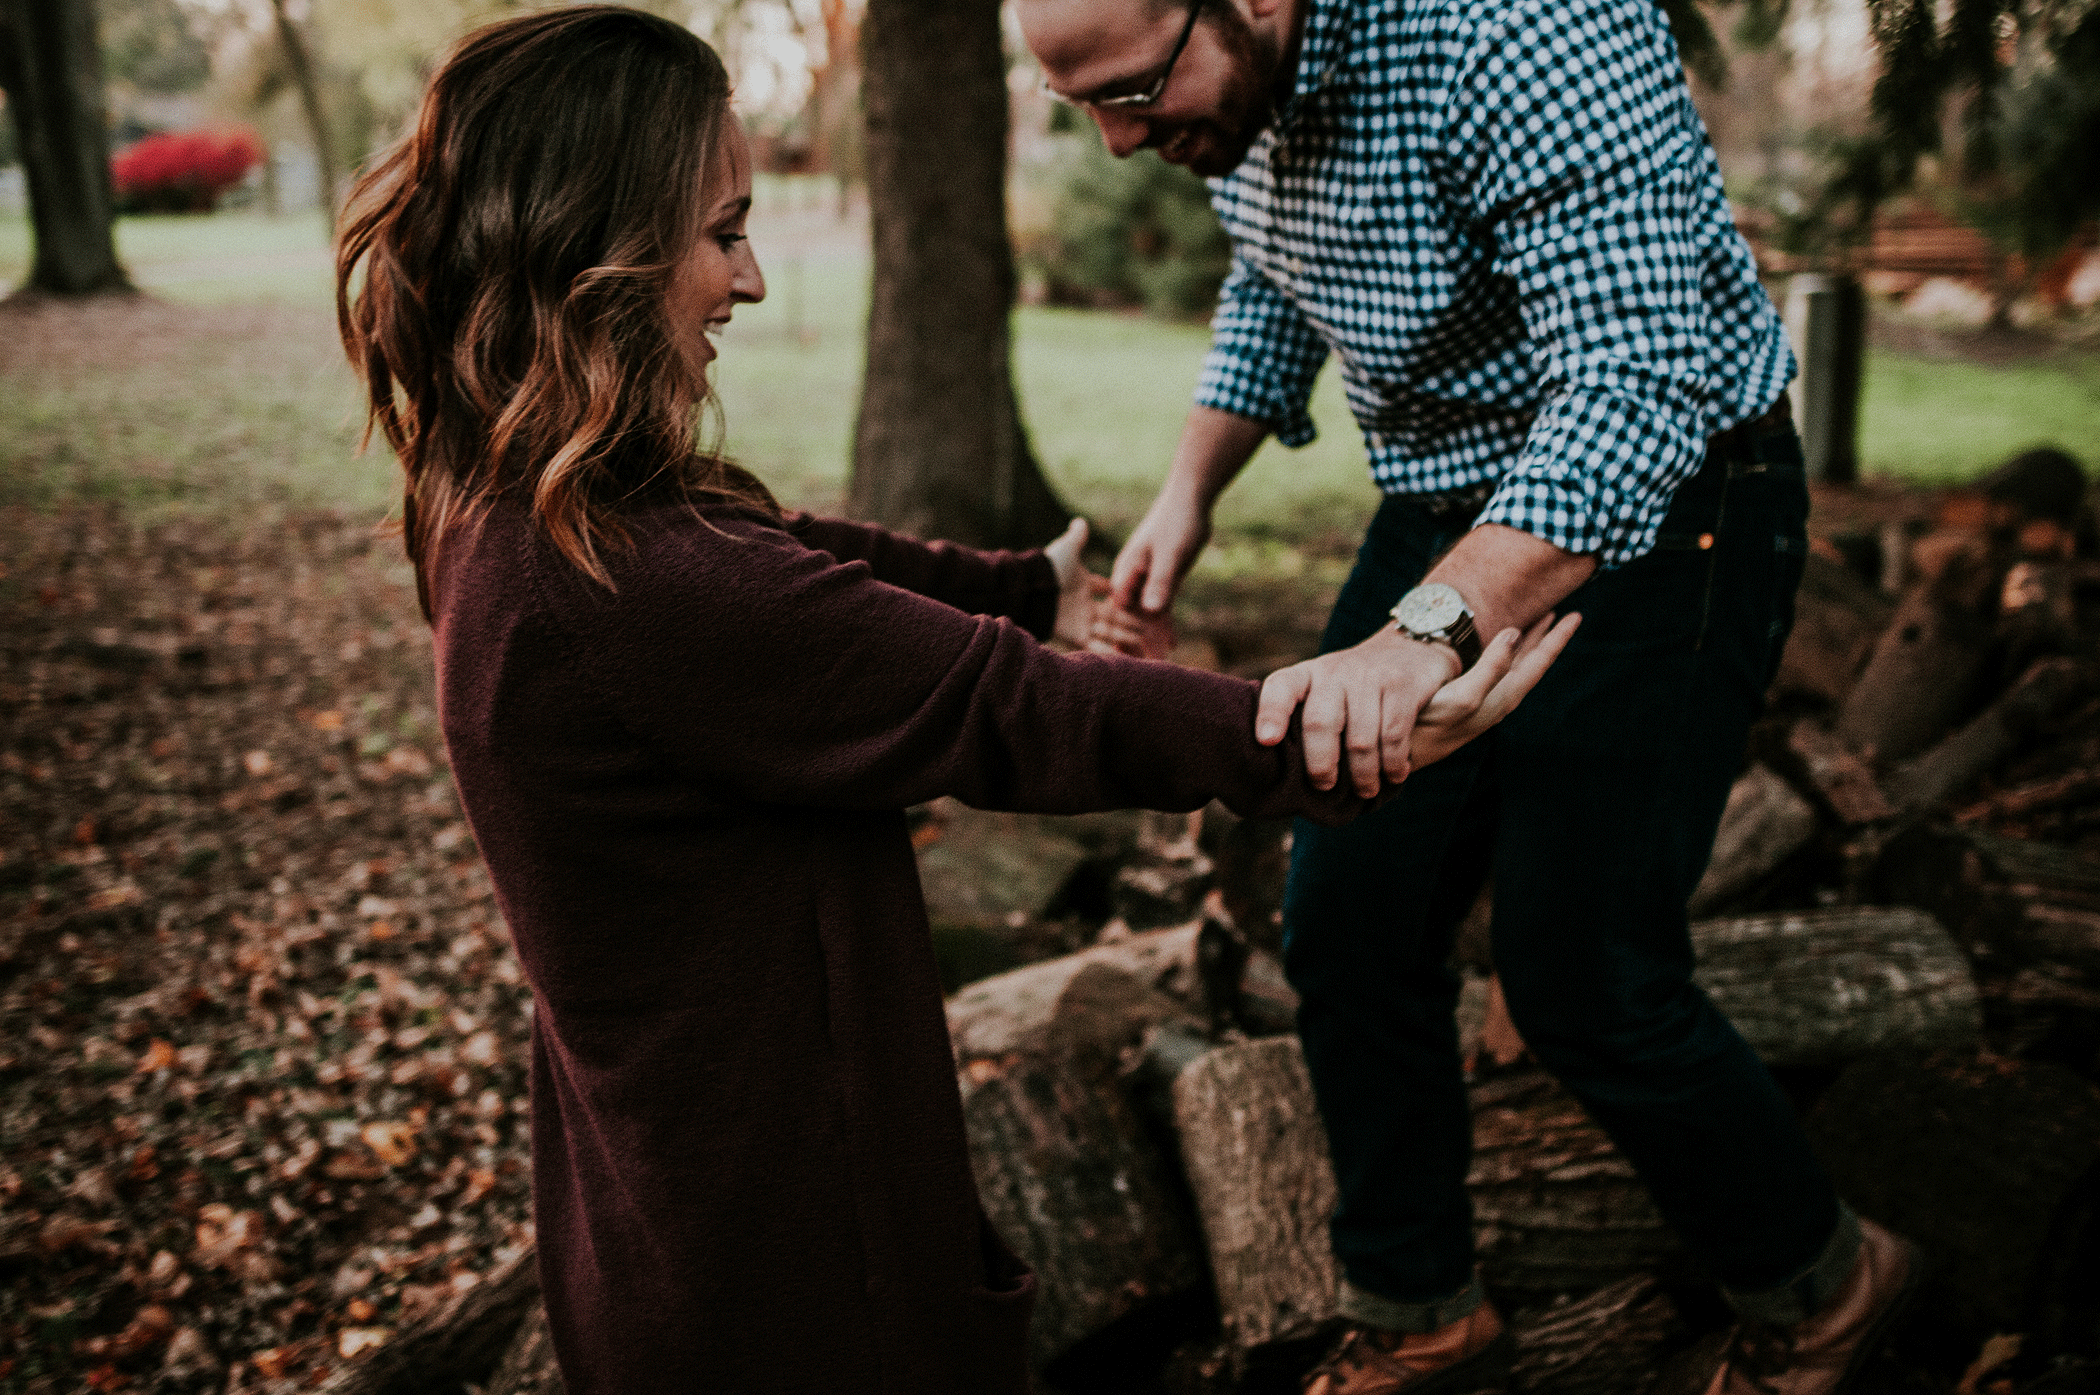 Jacob-and-Elyse(Engaged)-258.png